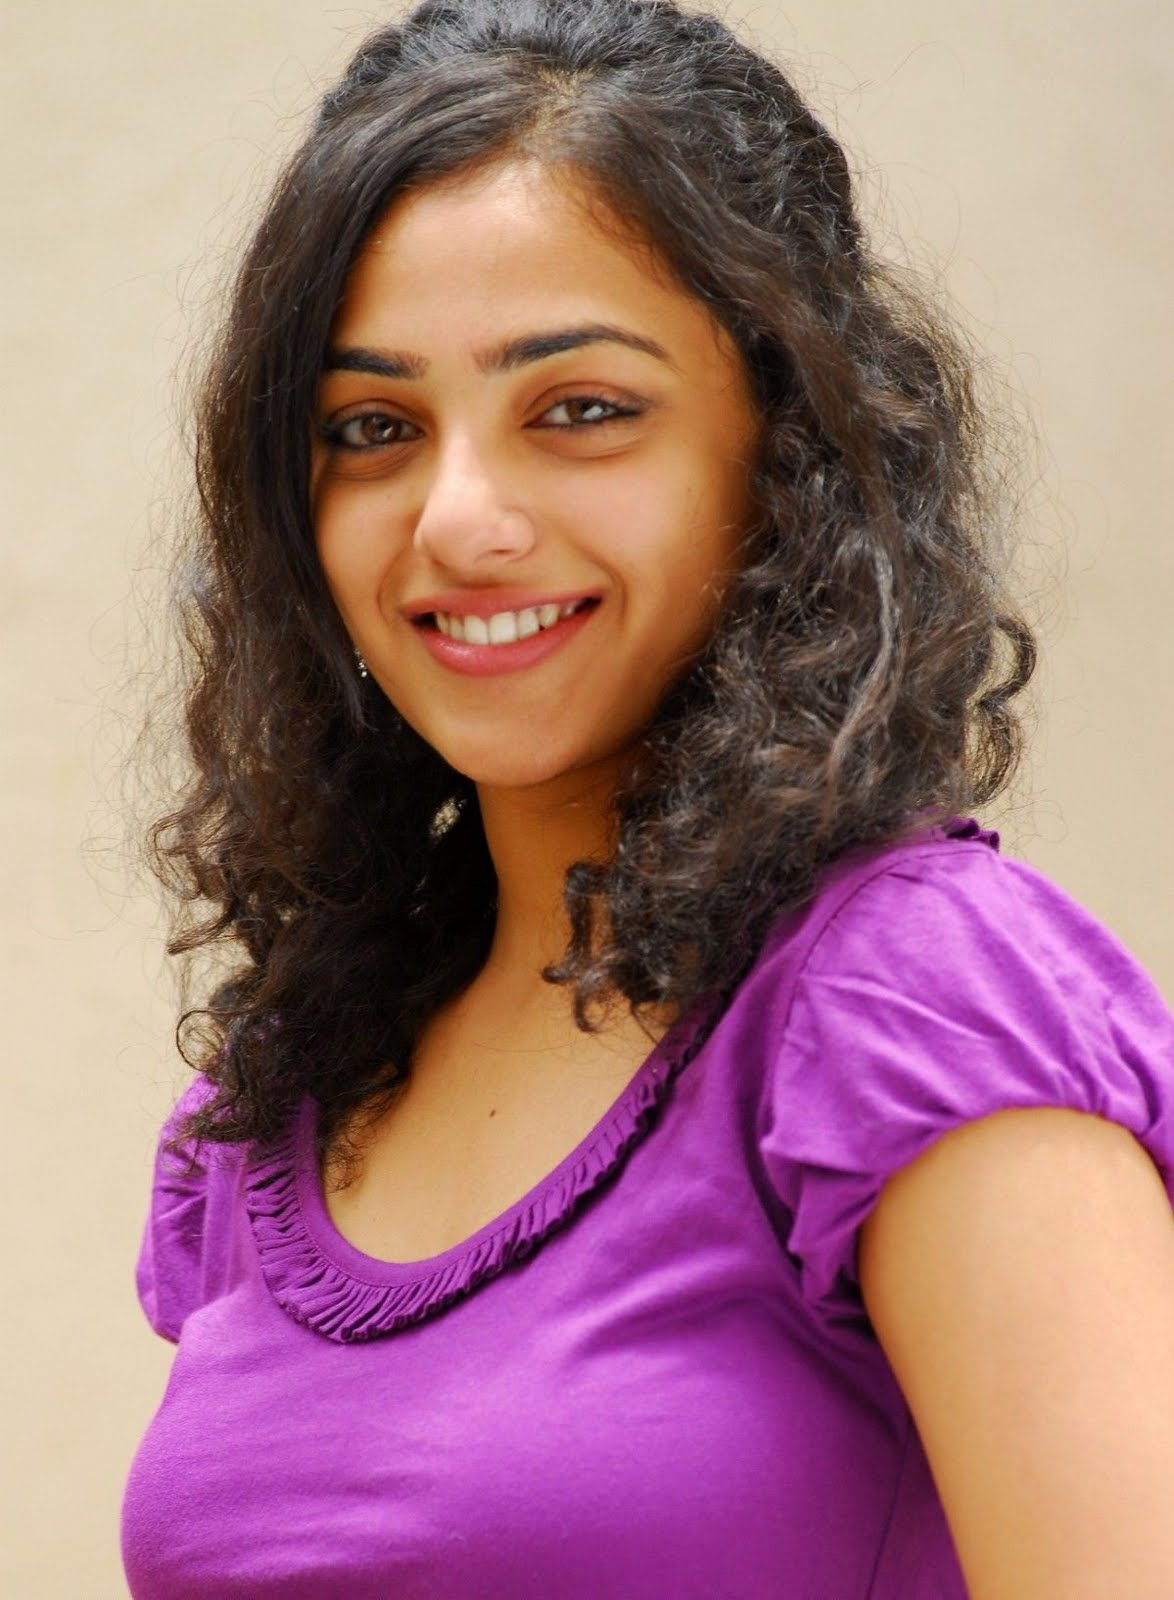 nithya menon hot tollywood actress stills actor actress biography